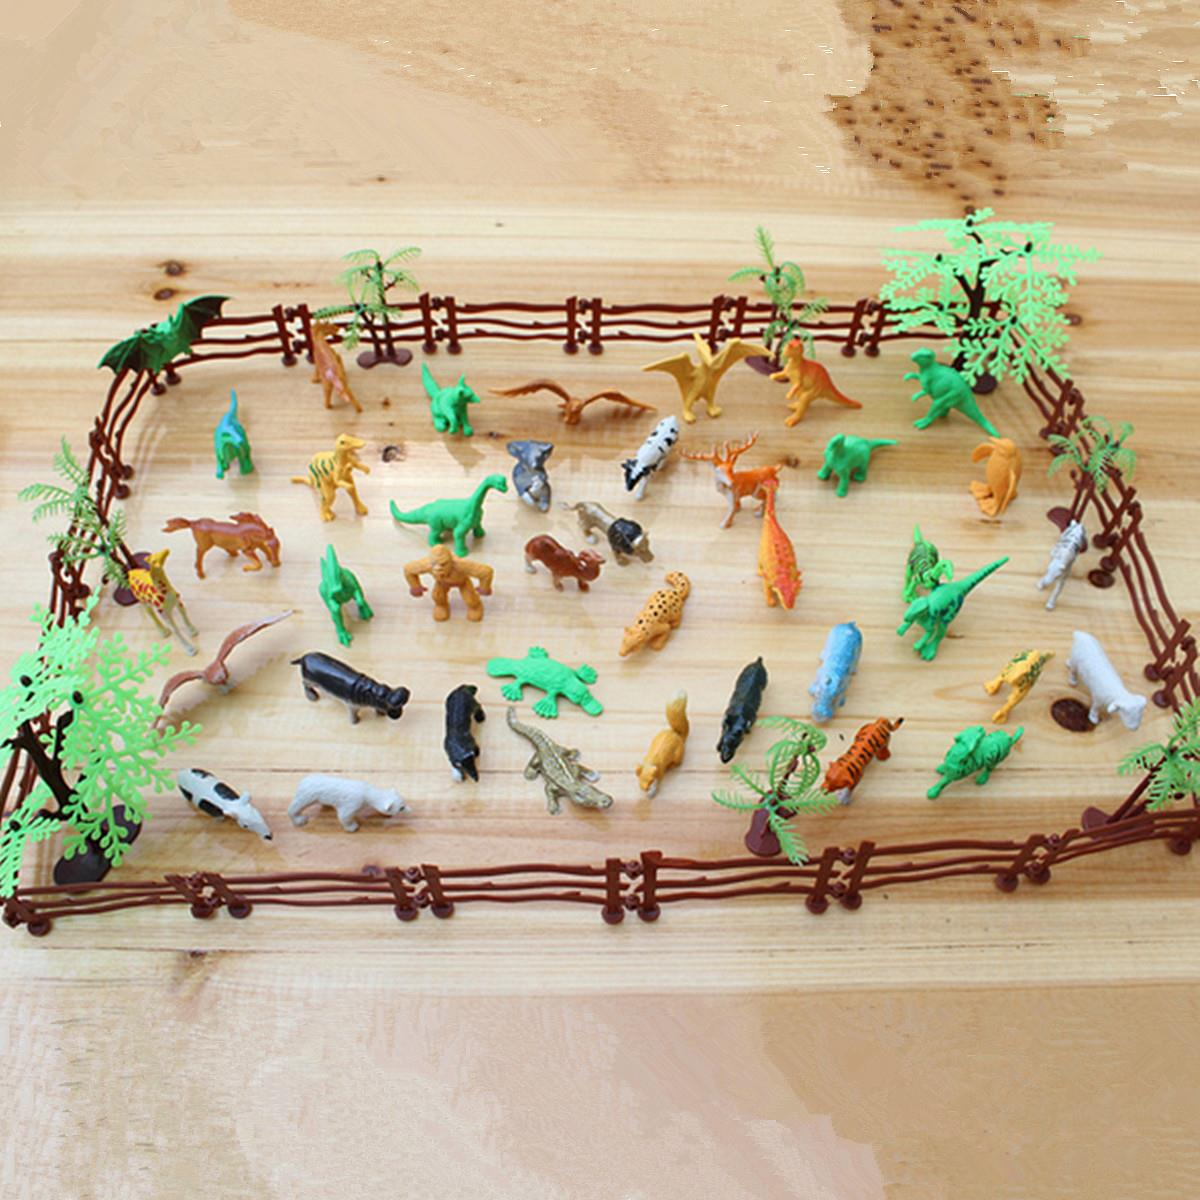 68PCS/set Plastic Farm Yard Wild Fence Tree Animals Model Kids Toys Figures Play Set Toys For Children Kids Adult mr froger aquatic creatures model toy shark wild animals toys zoo modeling set plastic solid sea life fish classic toys turtle